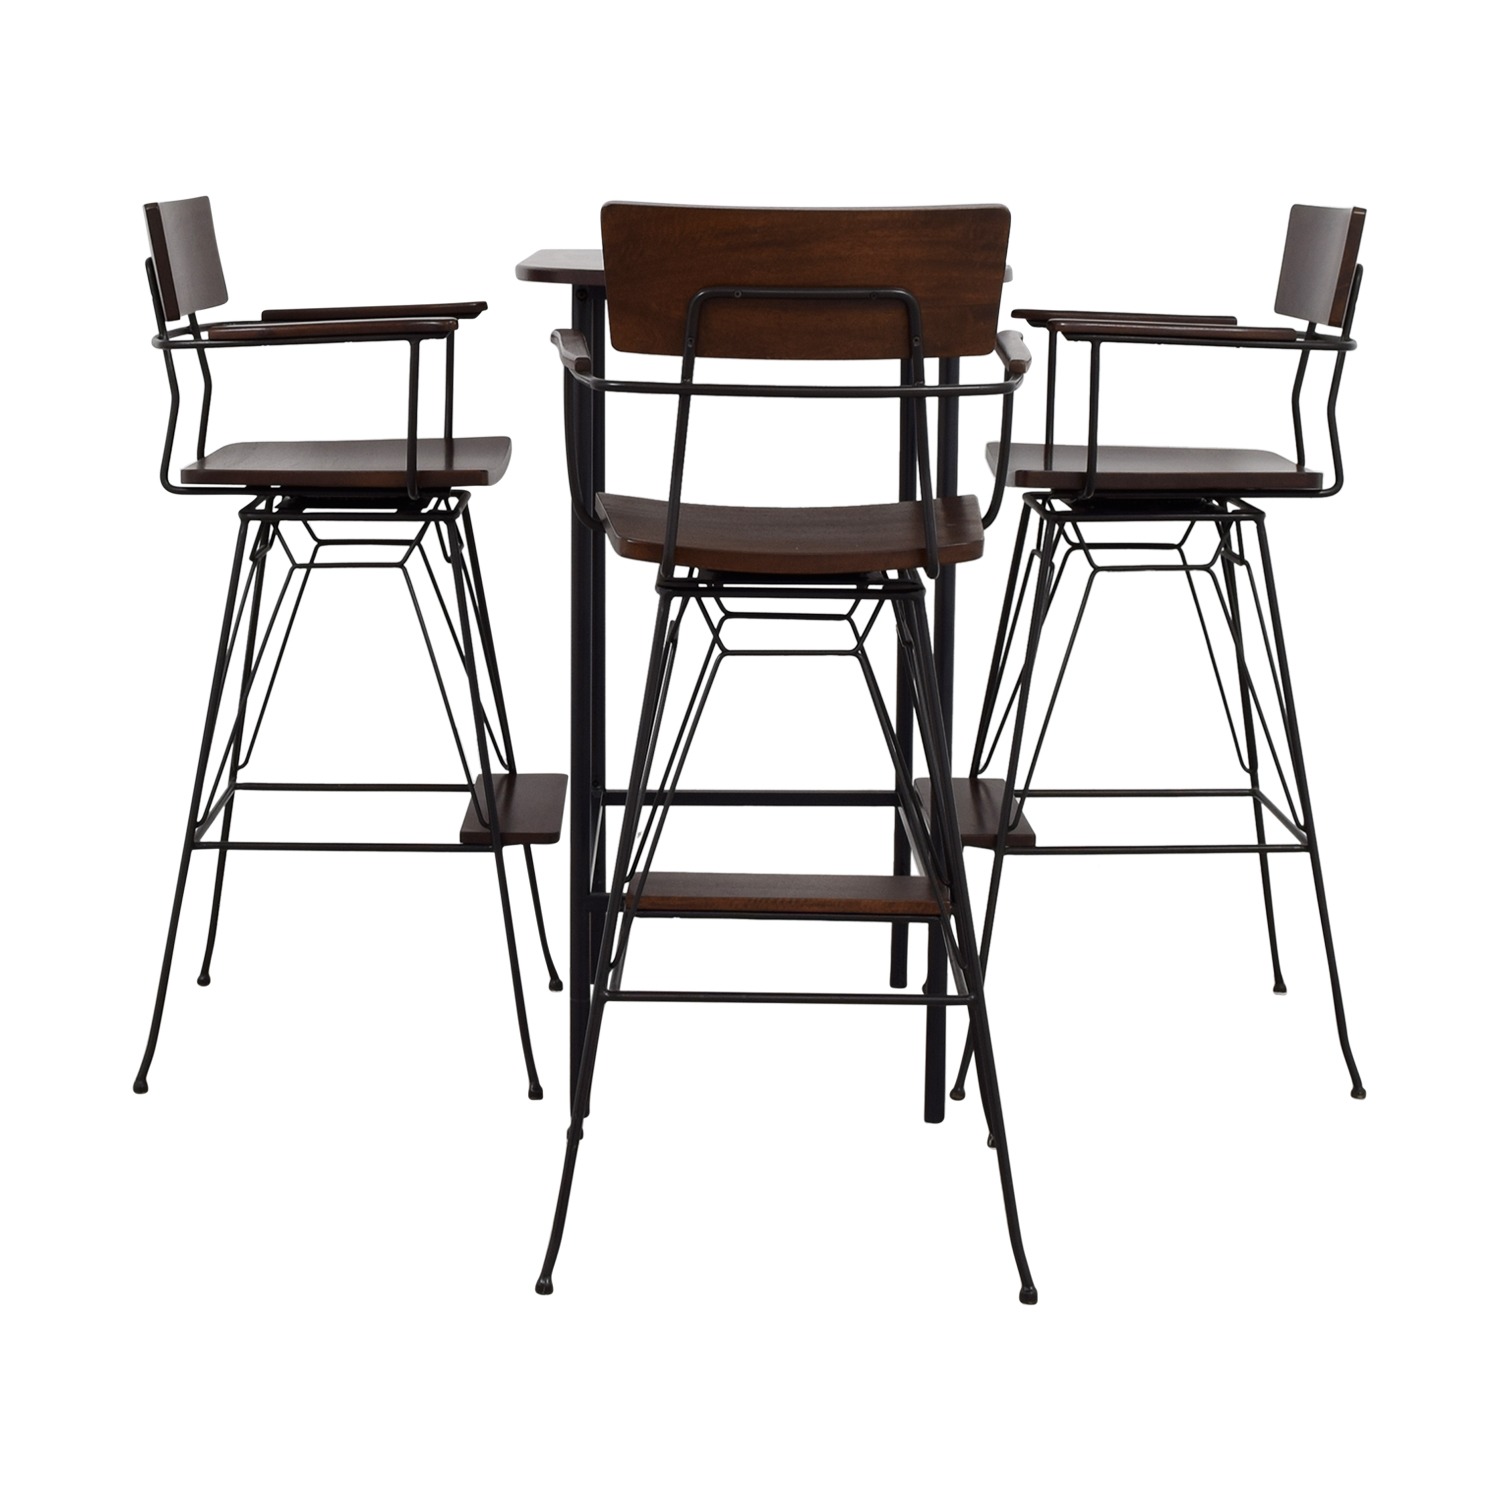 Crate & Barrel Pub Dining Set Crate & Barrel